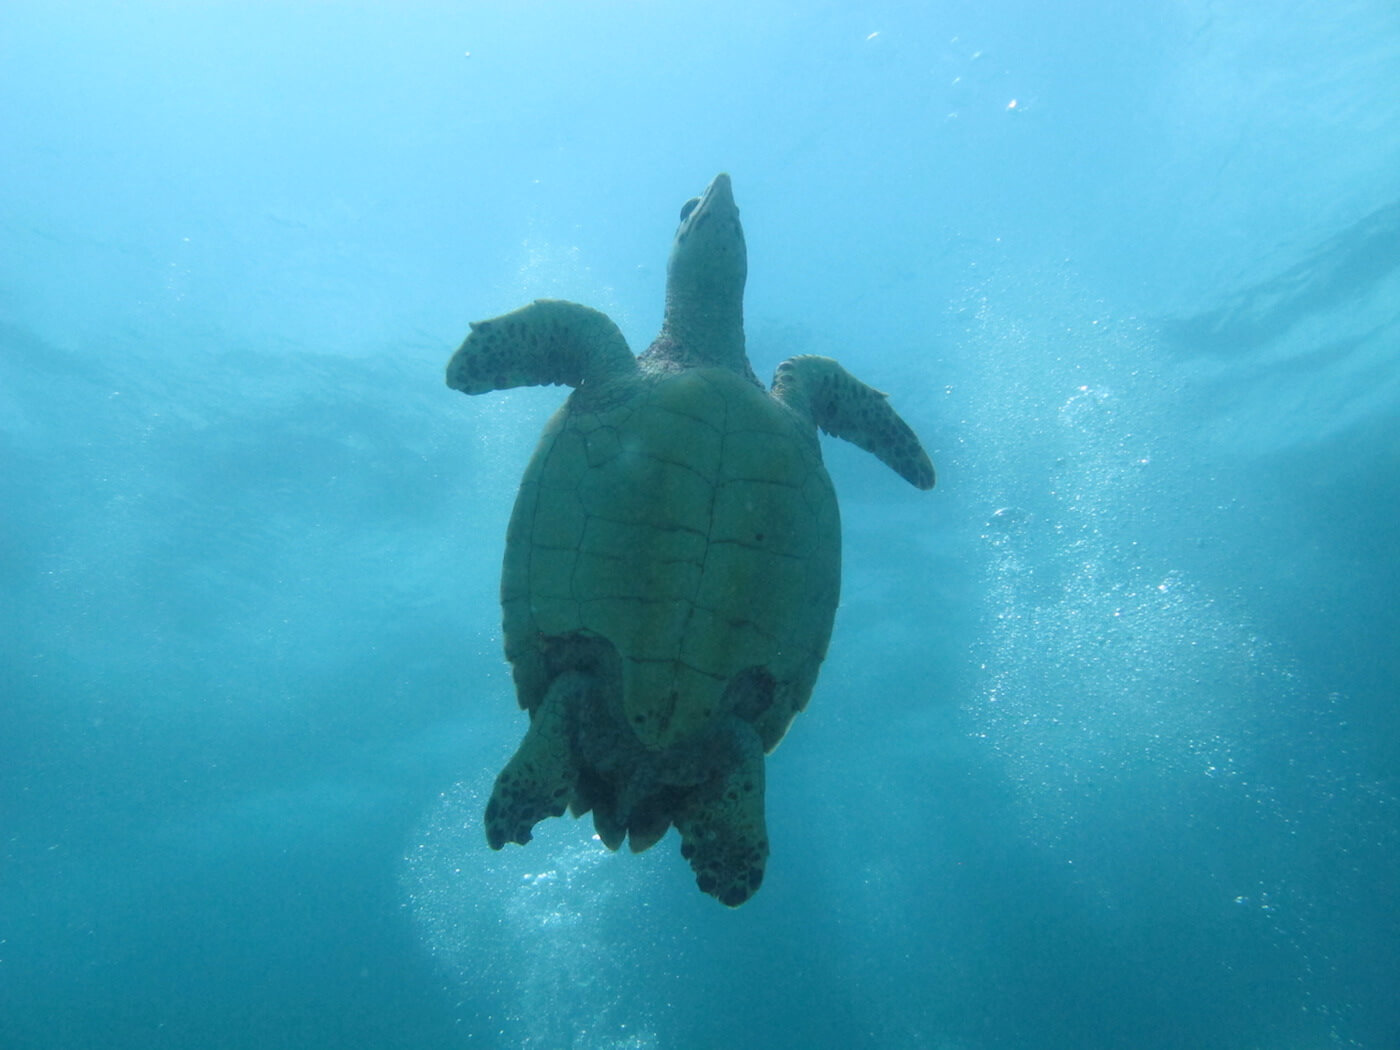 Sea-Turtle-Snorkeling-Scuba-Diving-Tours-Isla-Mujeres-Carey-Dive-Center-6